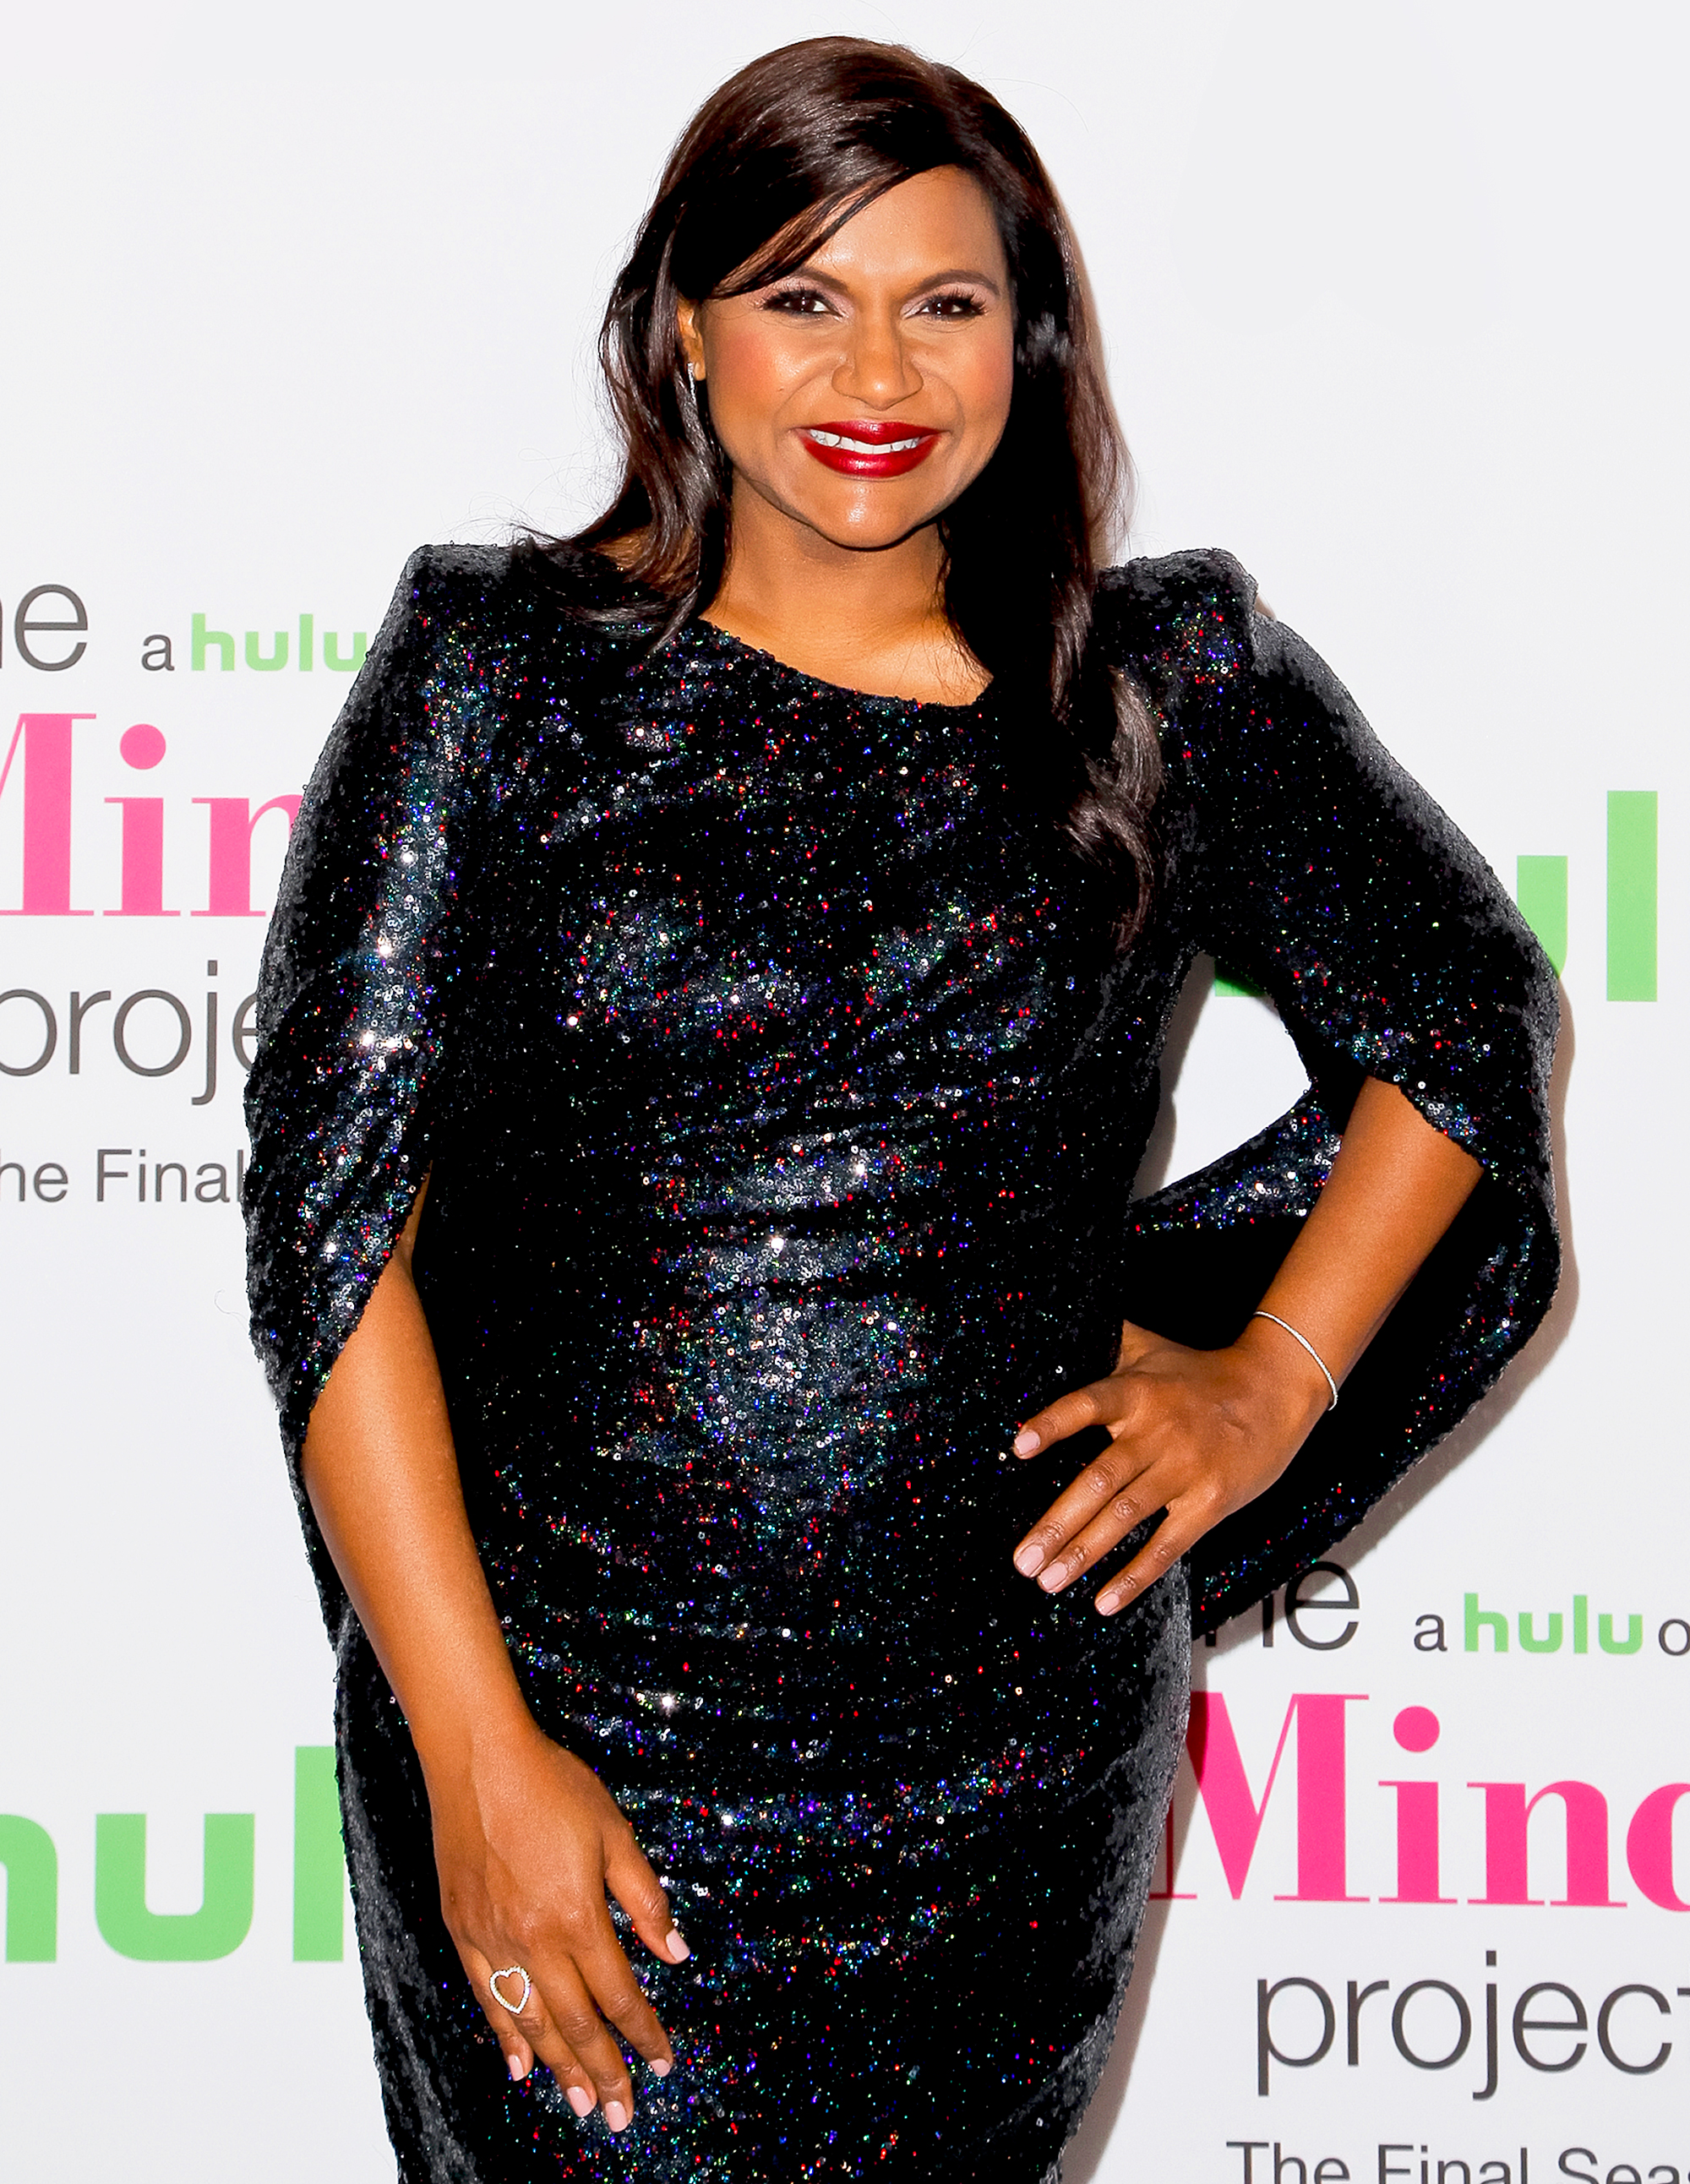 Mindy Kaling has welcomed her first child